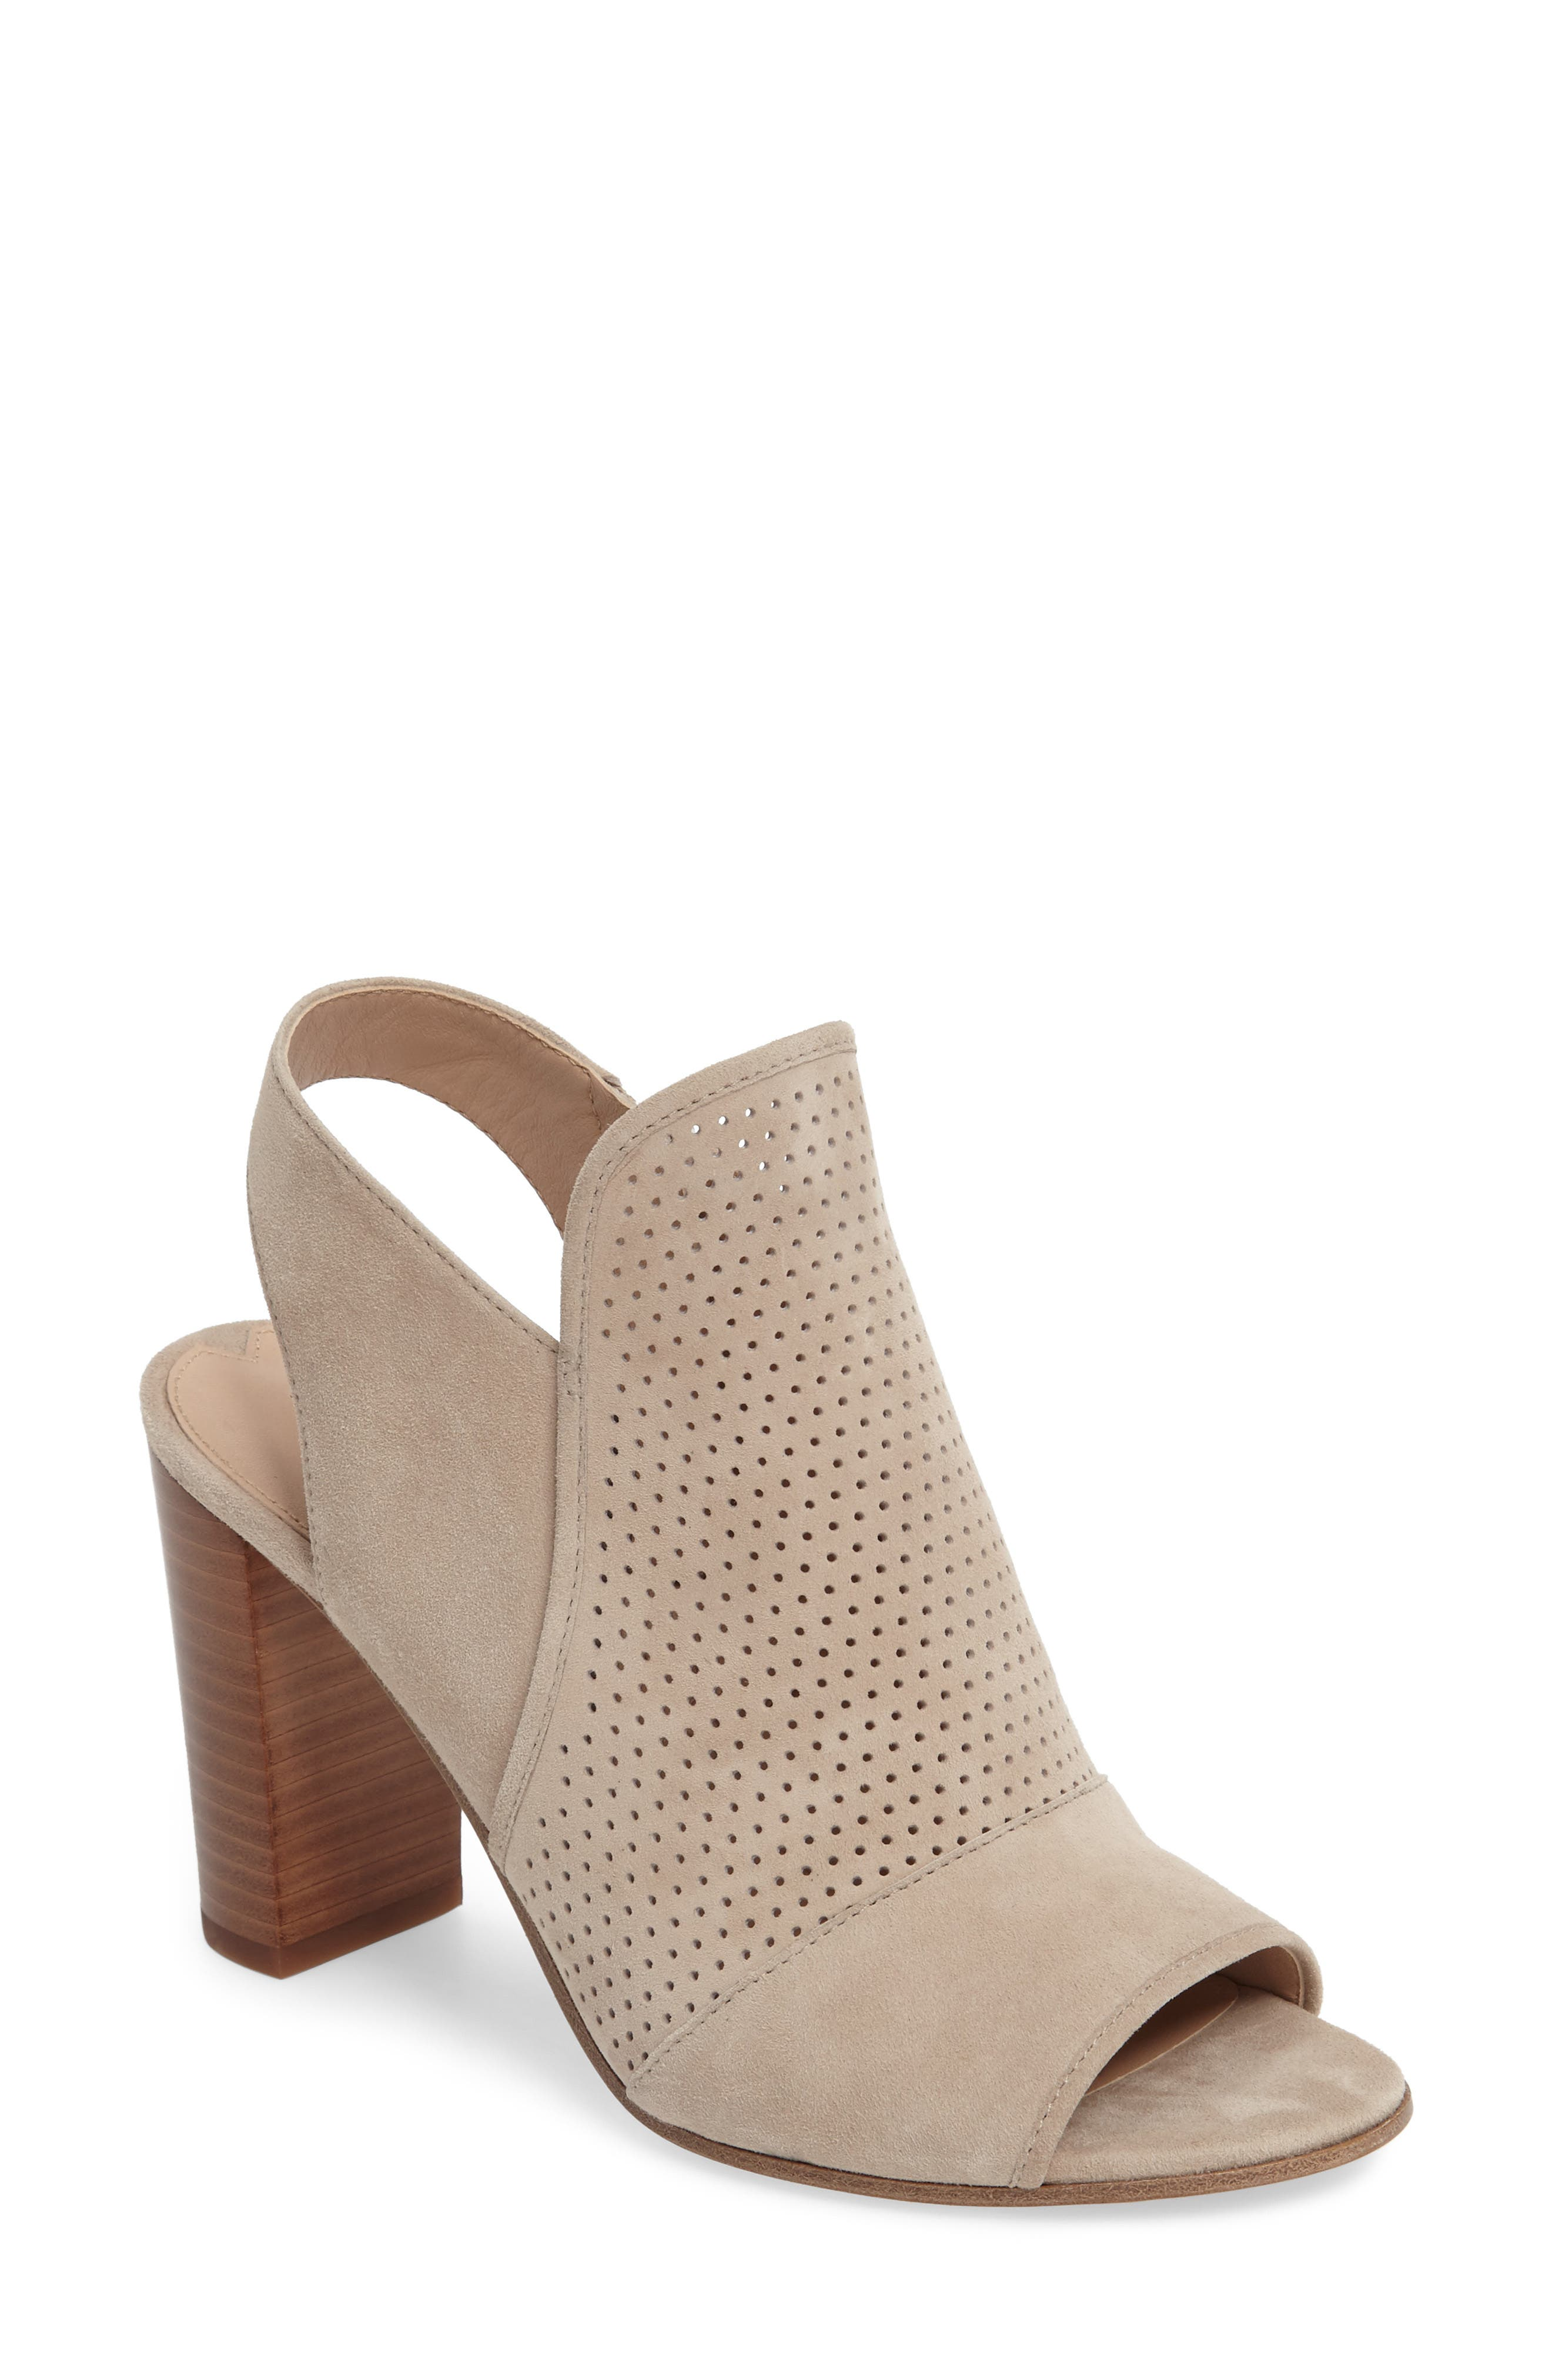 Via Spiga Gaze Block Heel Sandal (Women)